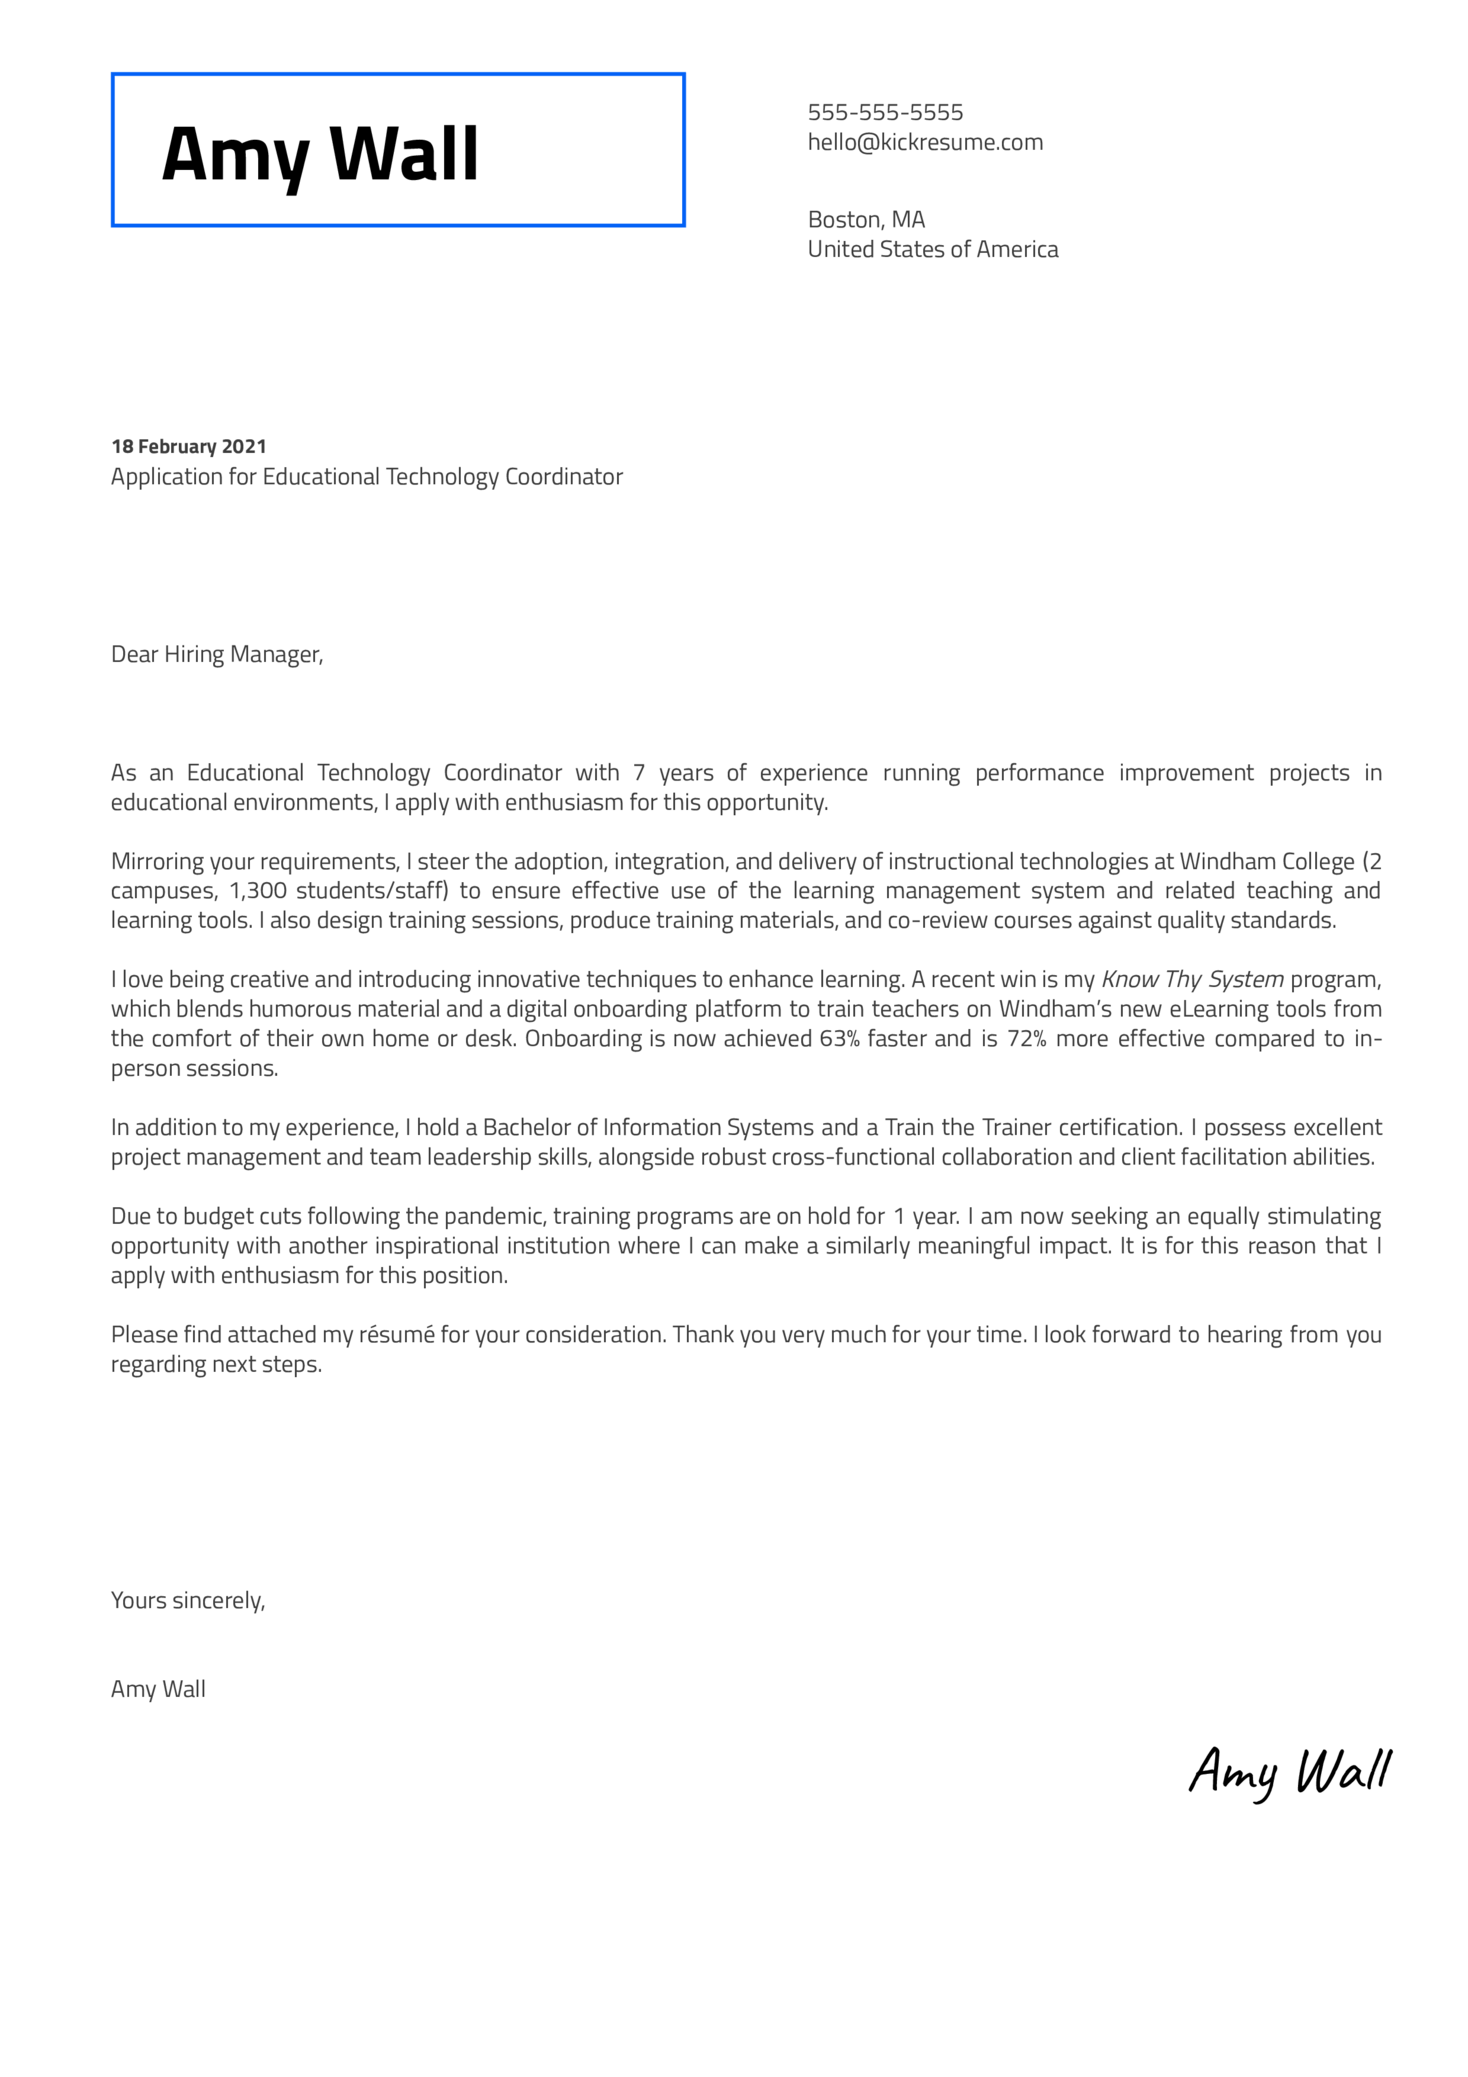 Educational Technology Coordinator Cover Letter Sample